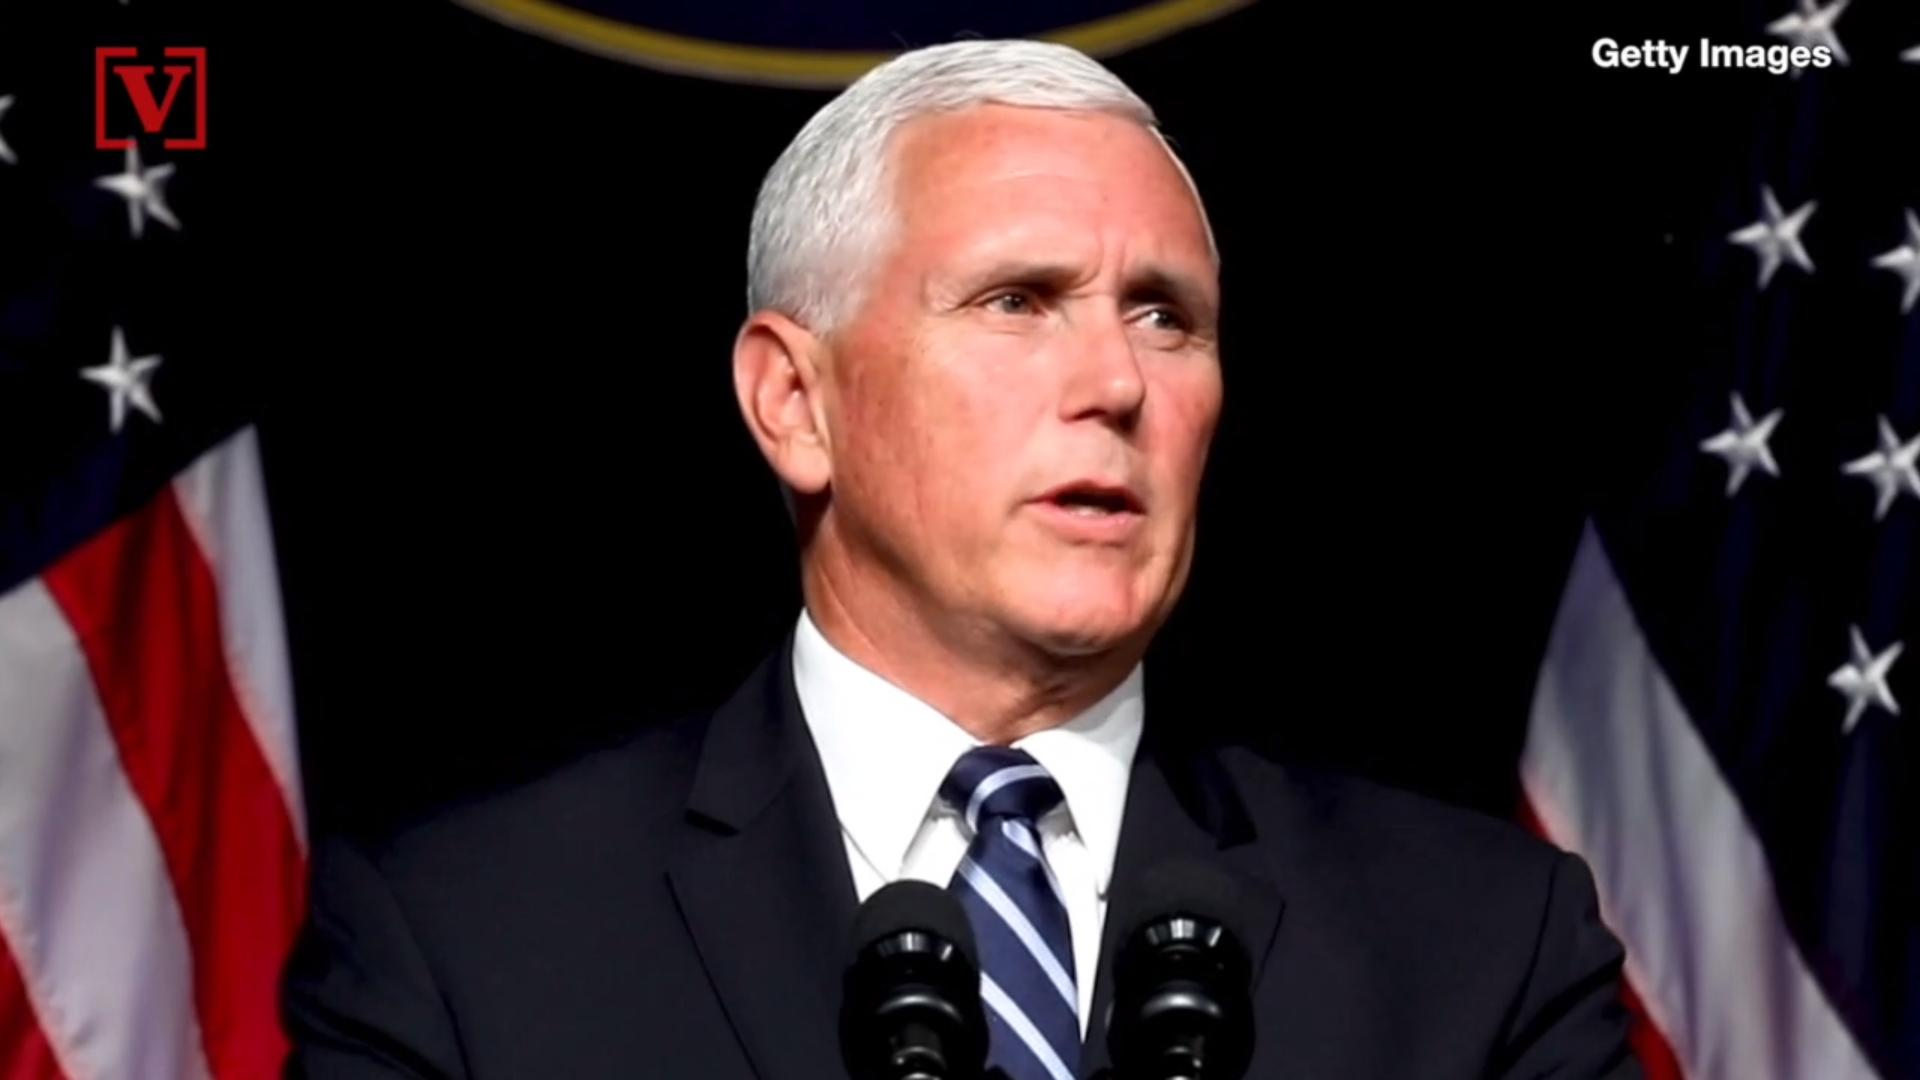 Lady Gaga's Moral Collision With Mike Pence Illustrates How Different Christians Can Be